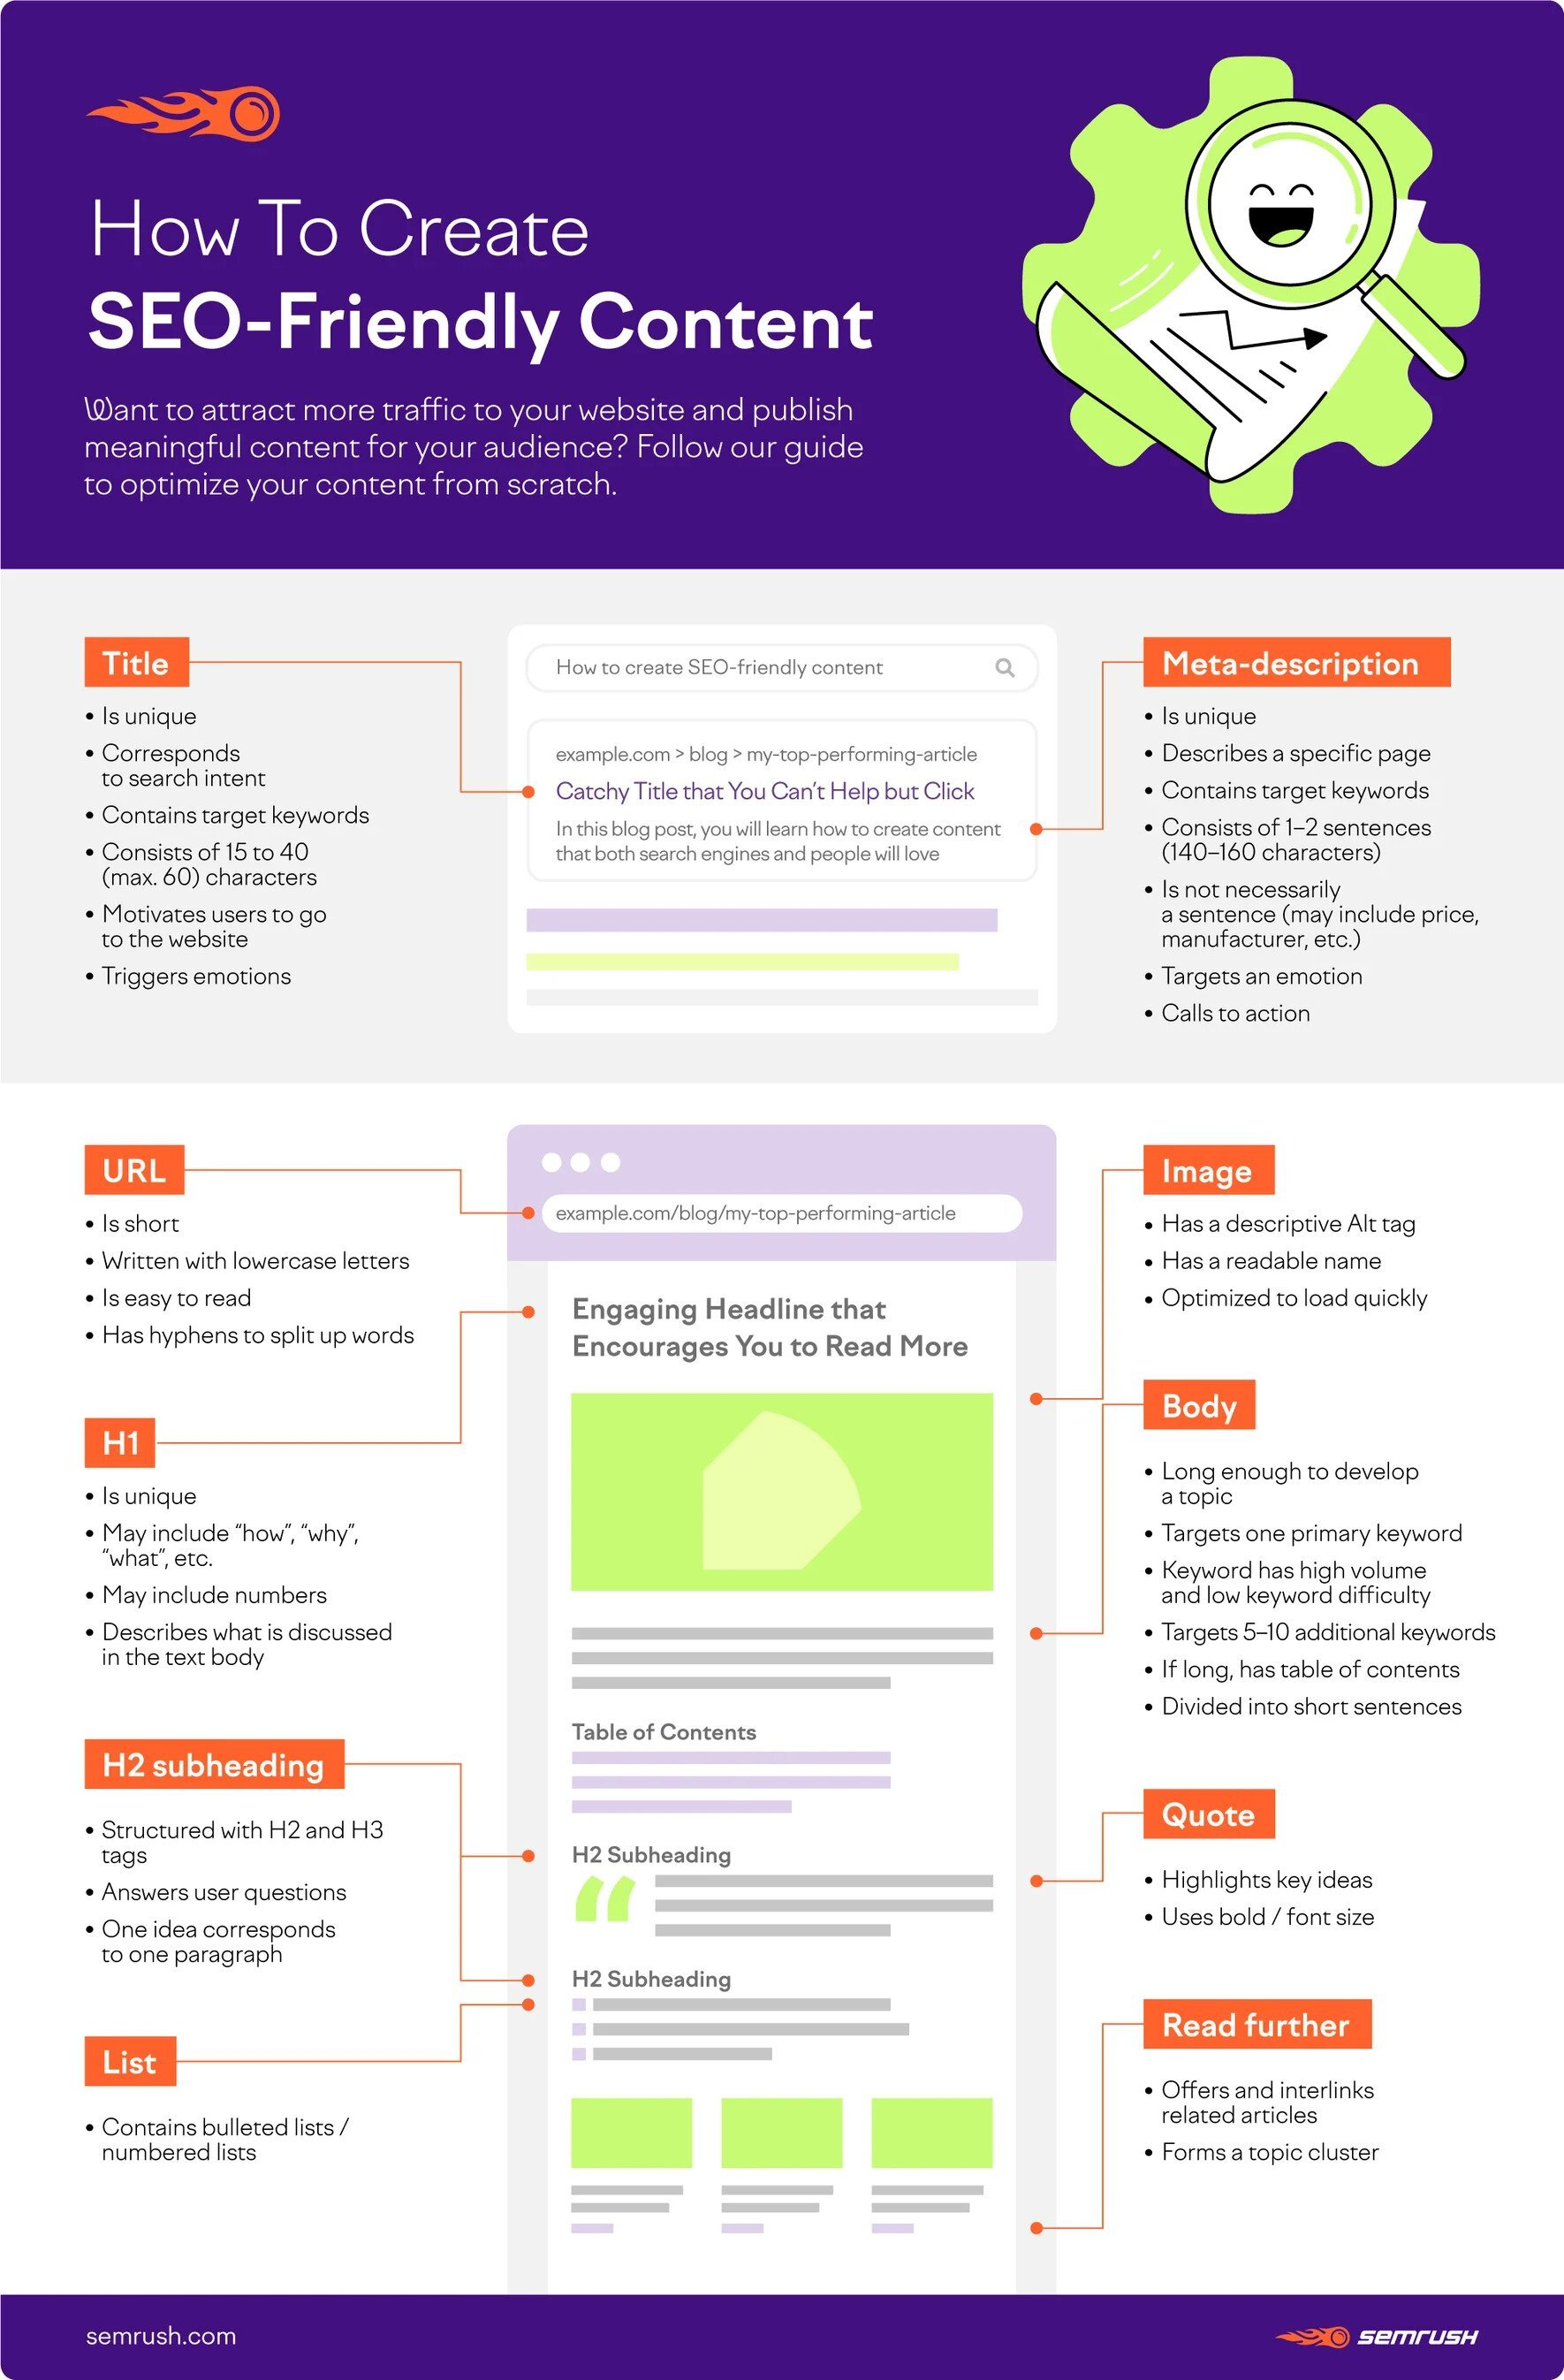 How to Create SEO-Friendly Content Infographic